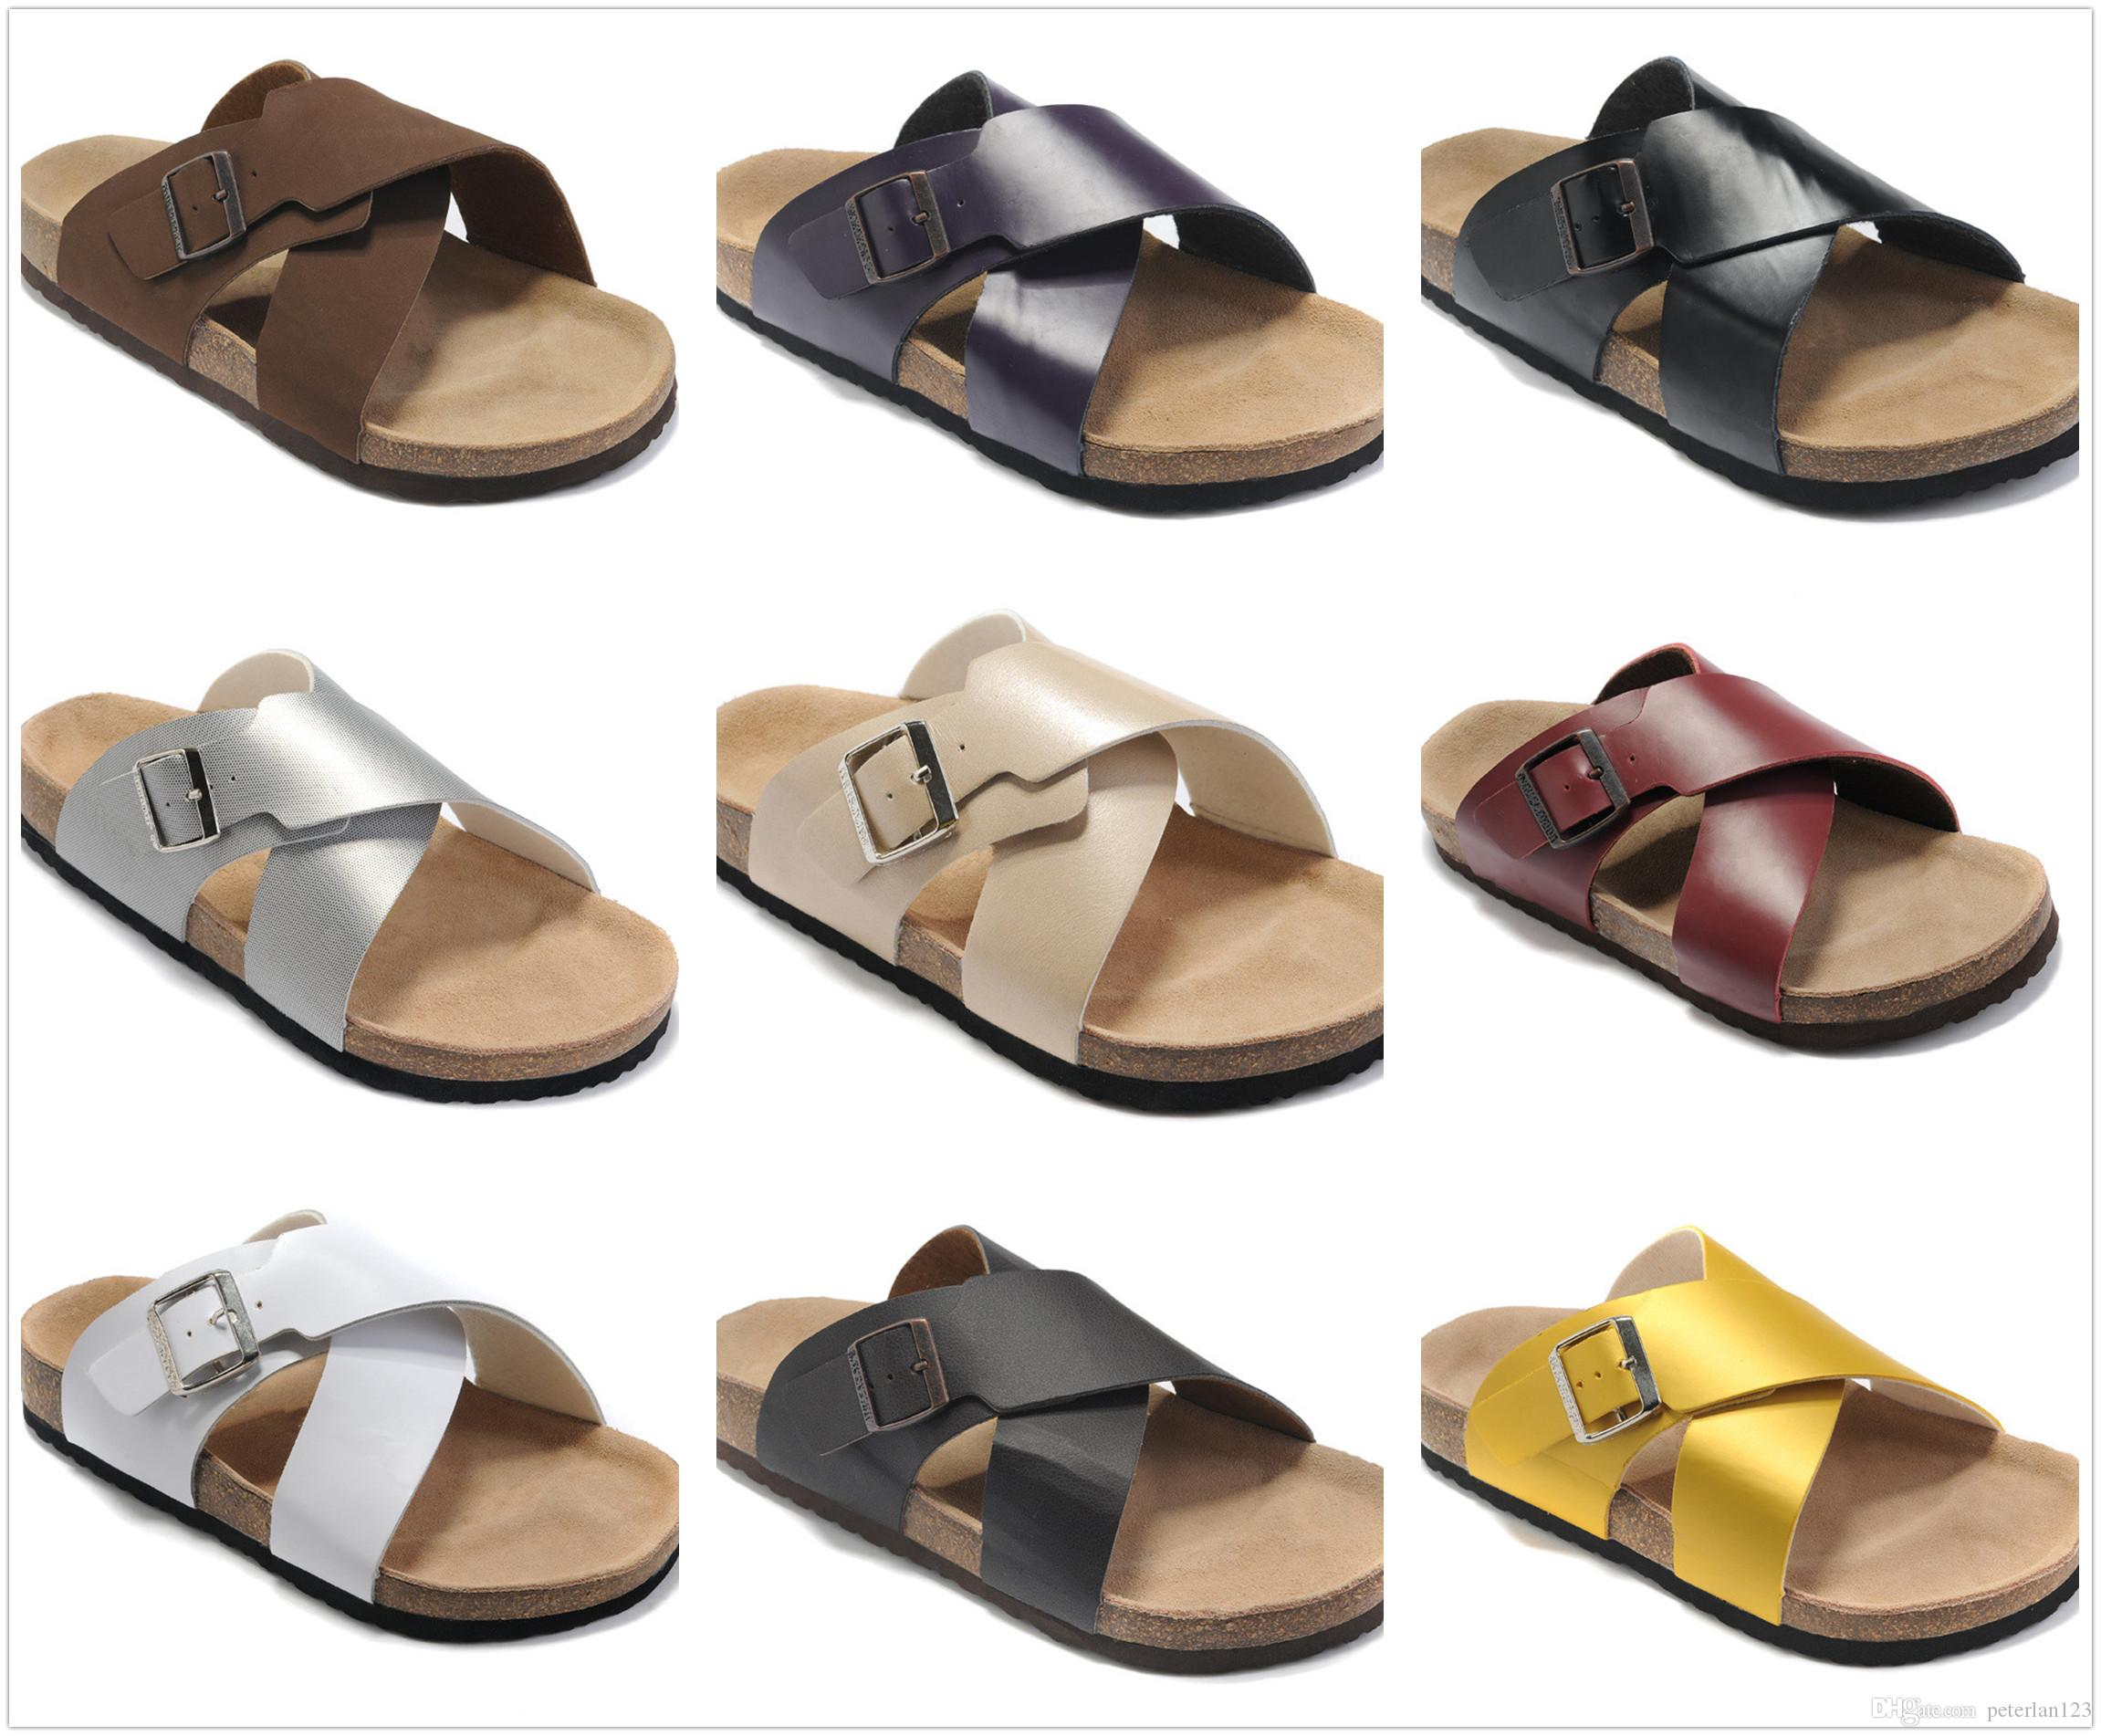 6765a1a7d X Style Colorful Famous Brand Arizona Men S Flat Heel Sandals Women  Classcis Summer Casual Shoes With Buckle High Quality Genuine Leather Sl  Boots Shoes ...